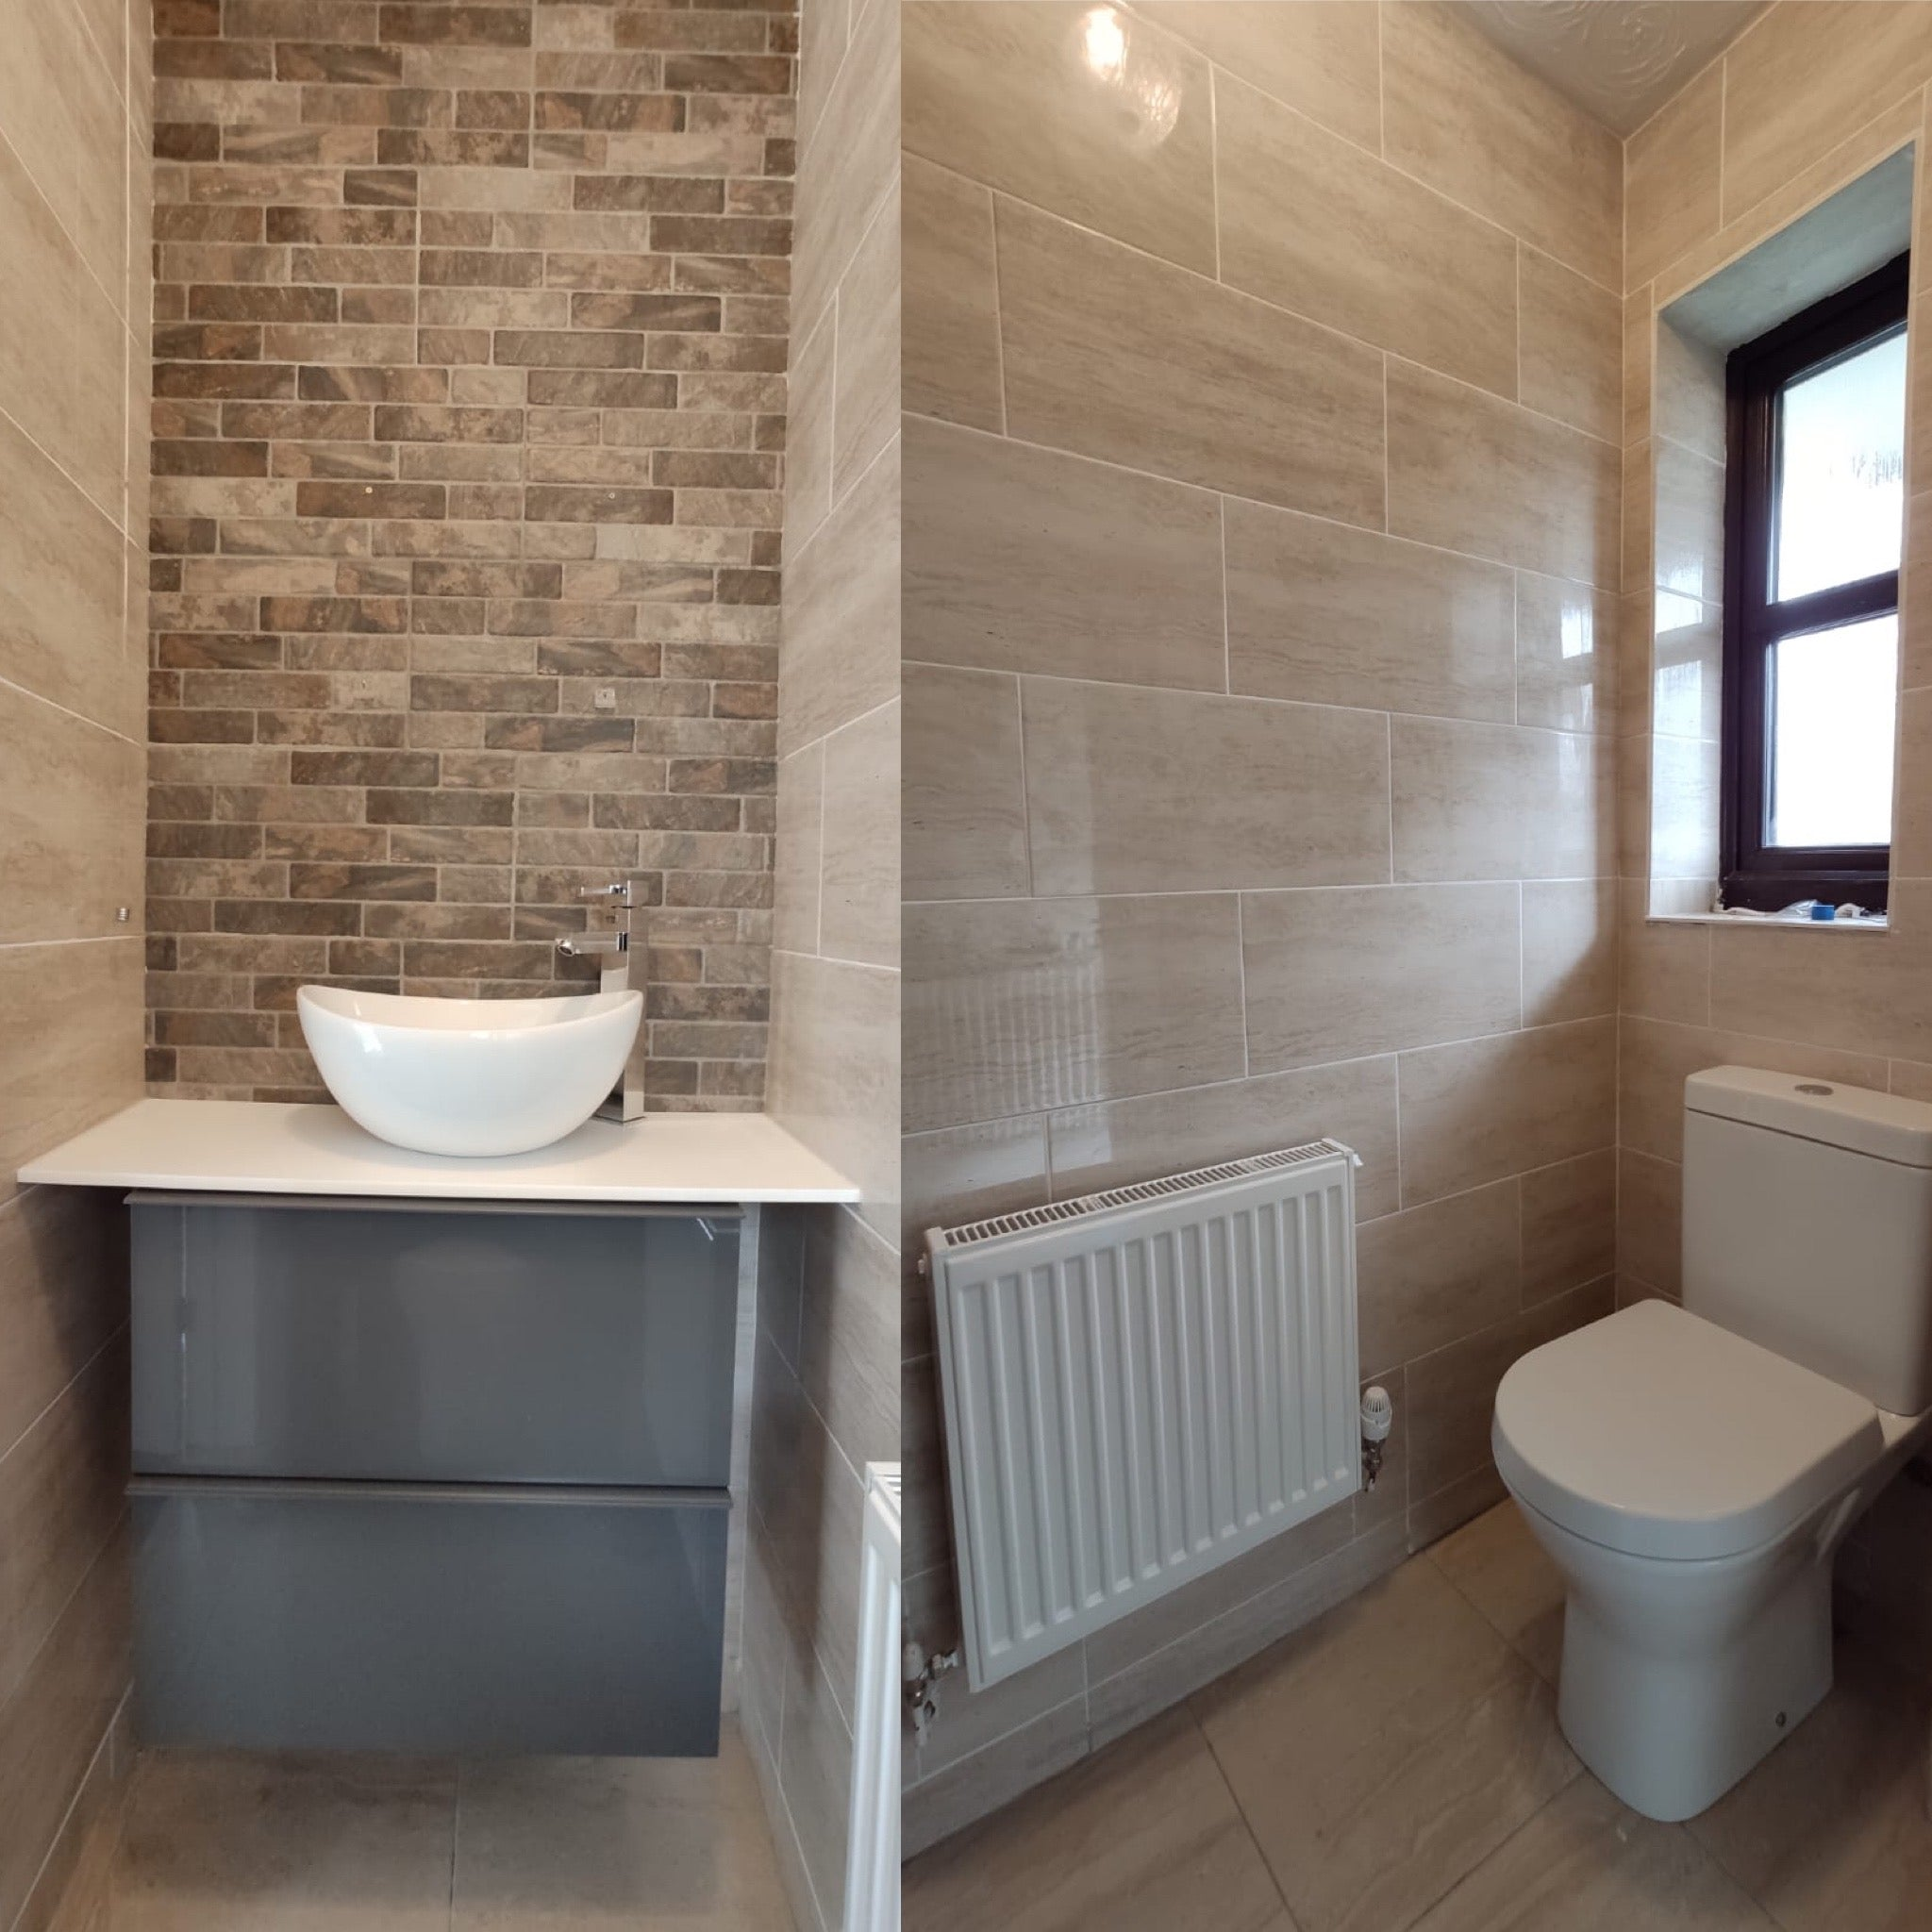 Bathroom Installations and Upgrades